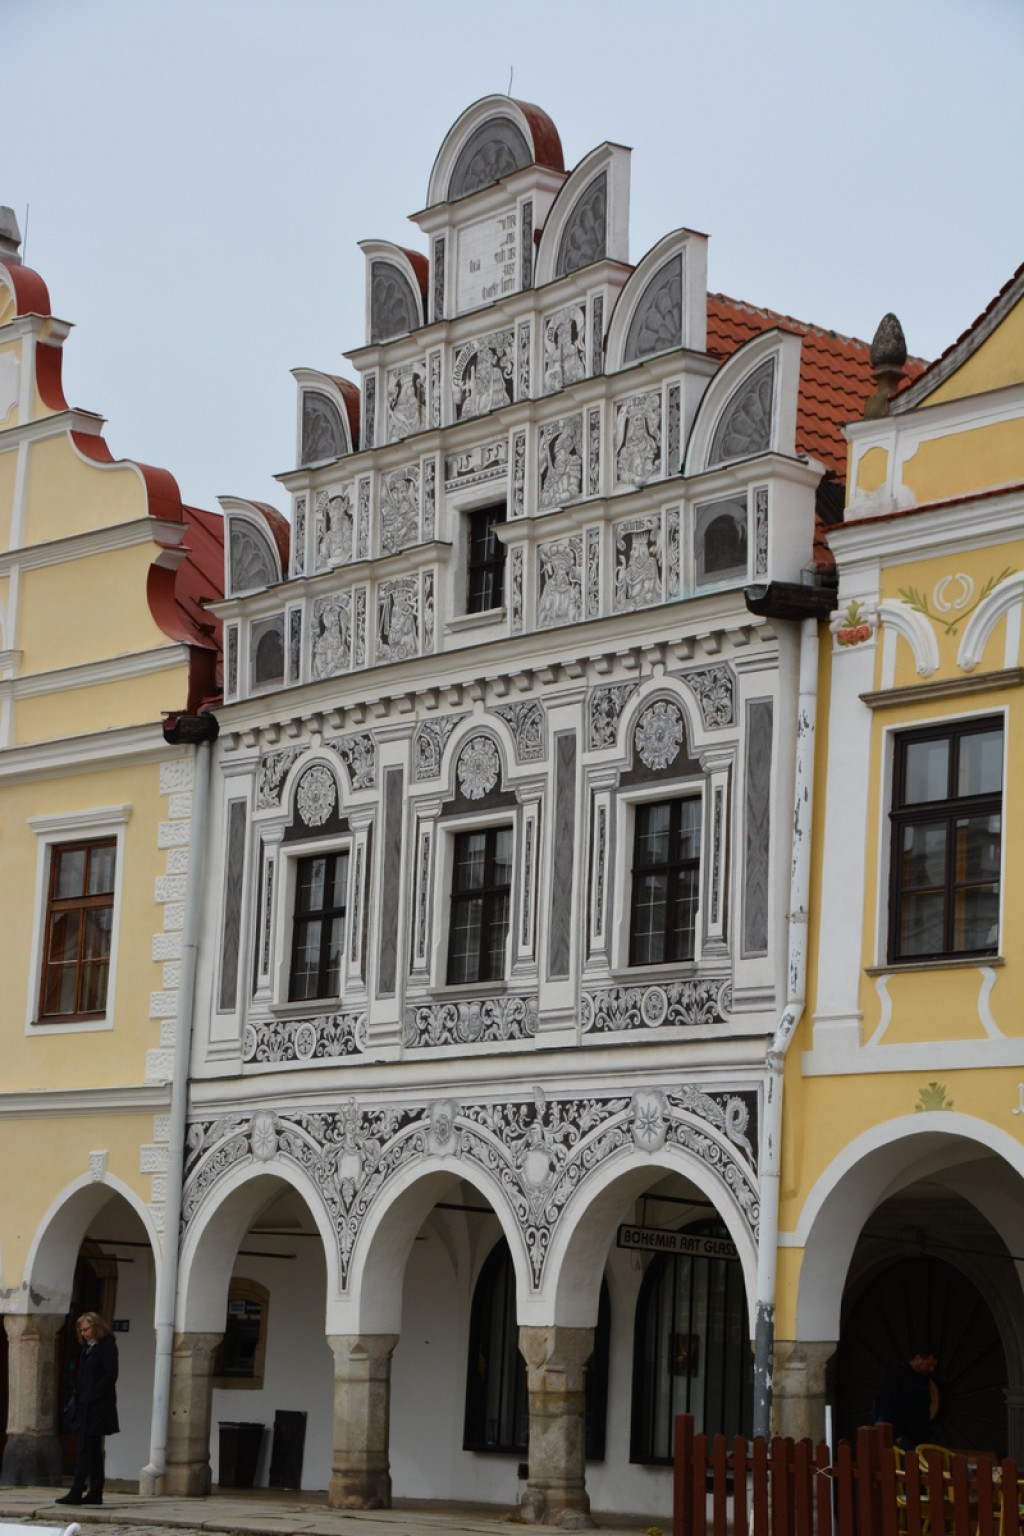 We stopped briefly in Telc - what a magical little town. The square is fabulous, with its mulitcolored houses, and the old town is surrounded by fish ponds.